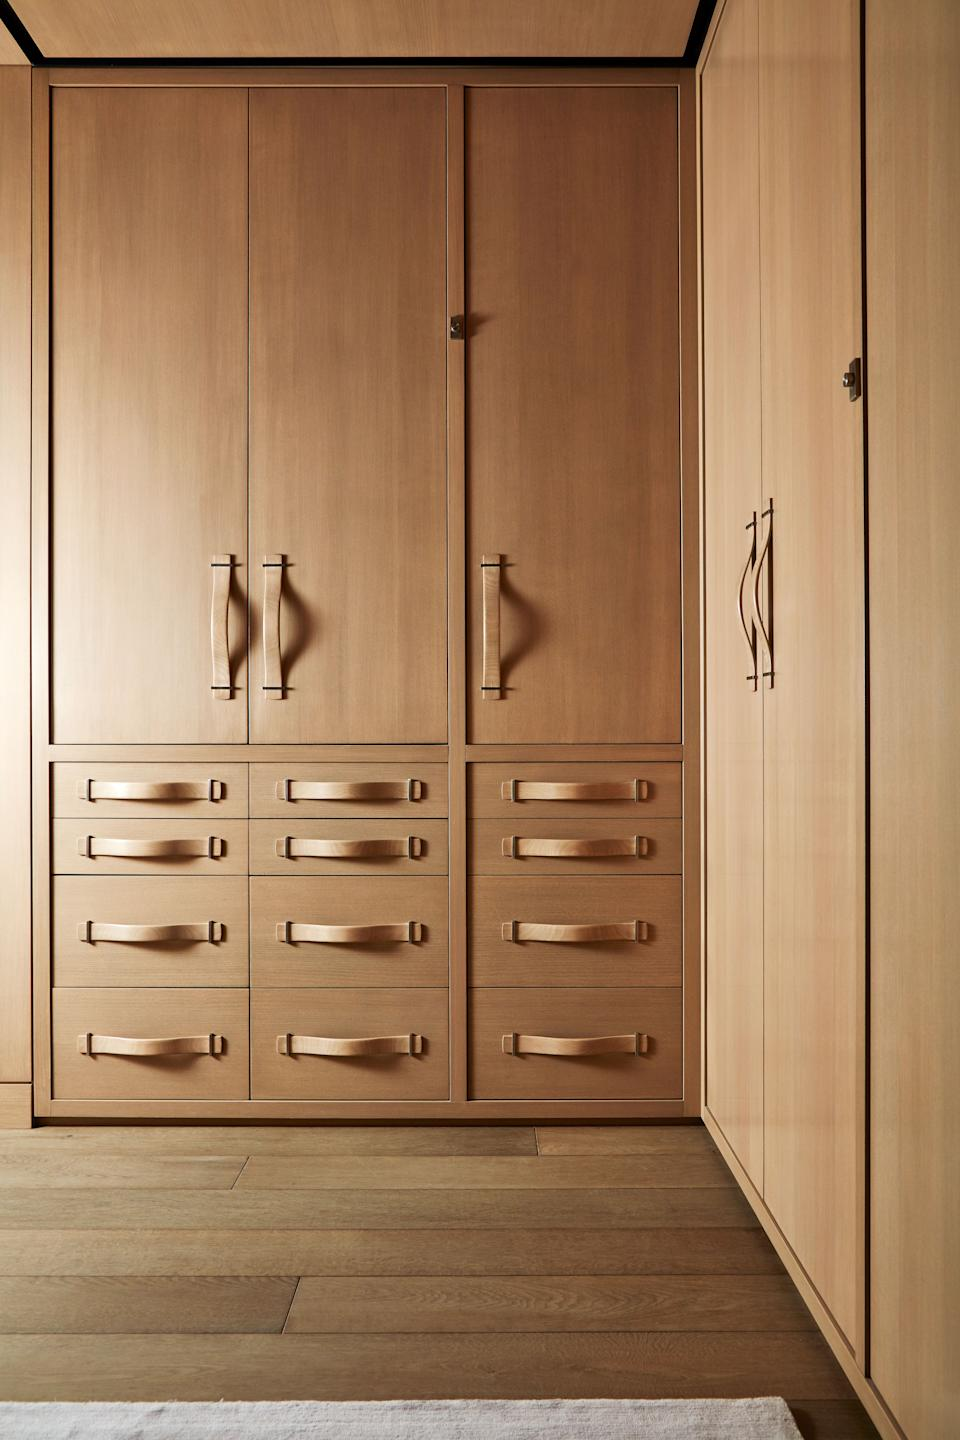 Bleached beechwood cupboards with carved handles line the dressing room.